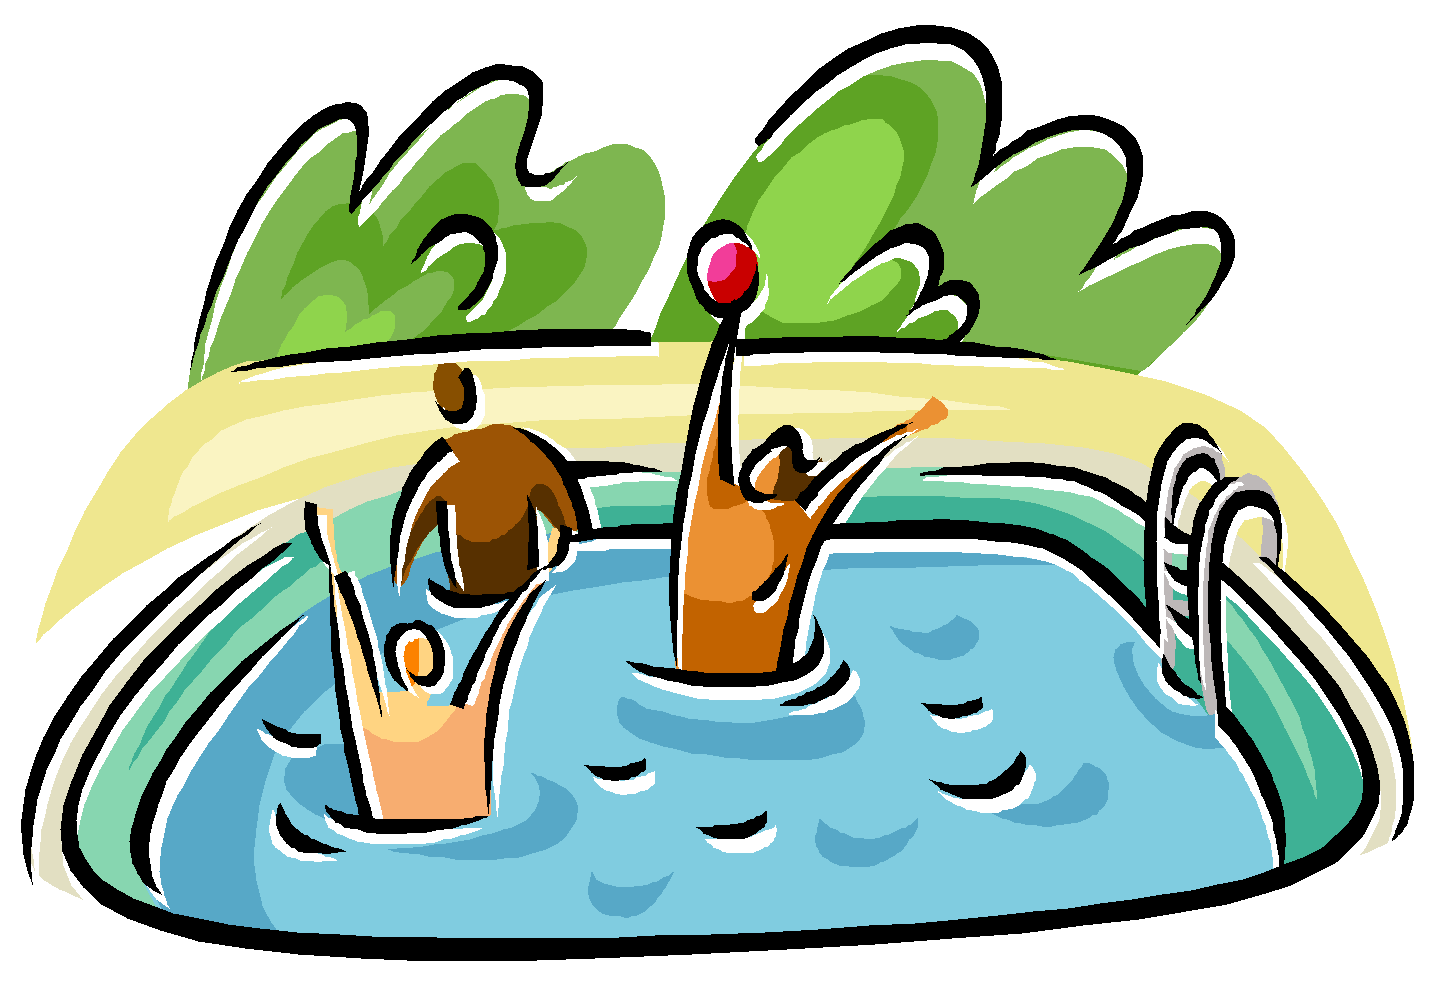 Swimming In A Pool Clipart Clipart Best-Swimming In A Pool Clipart Clipart Best-17